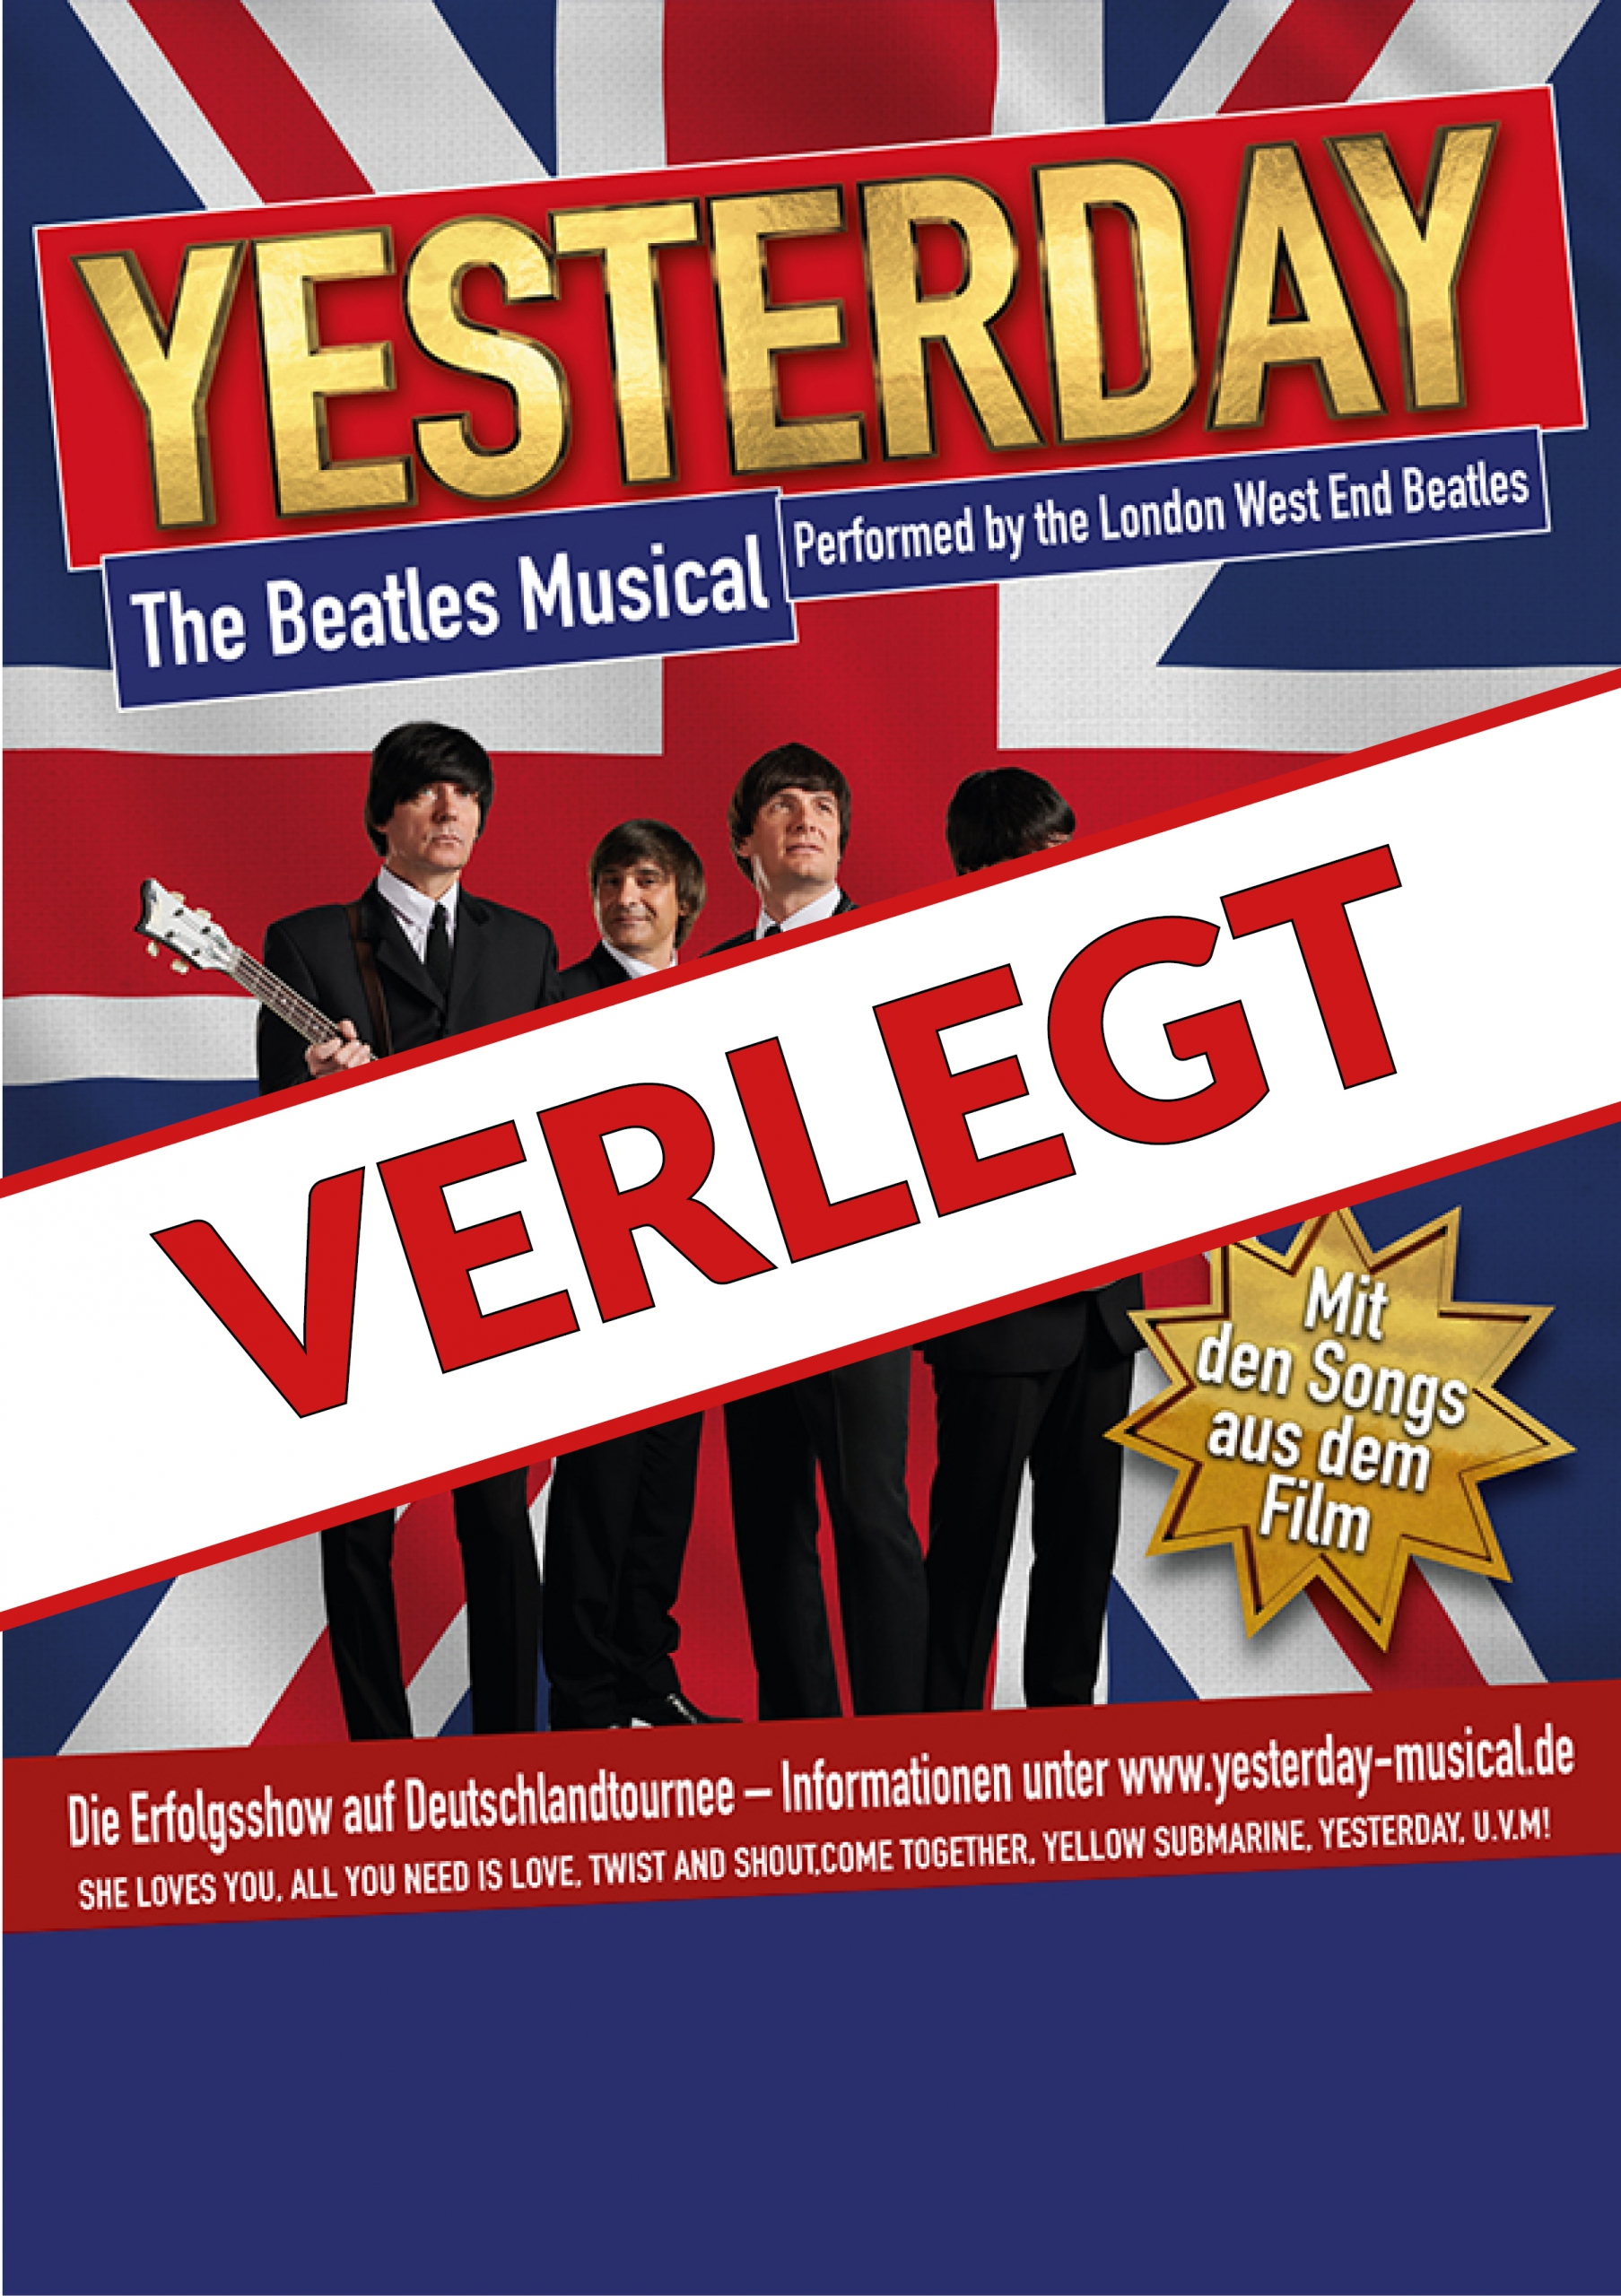 Yesterday – the Beatles Musical performed by the London West End Beatles – VERLEGT